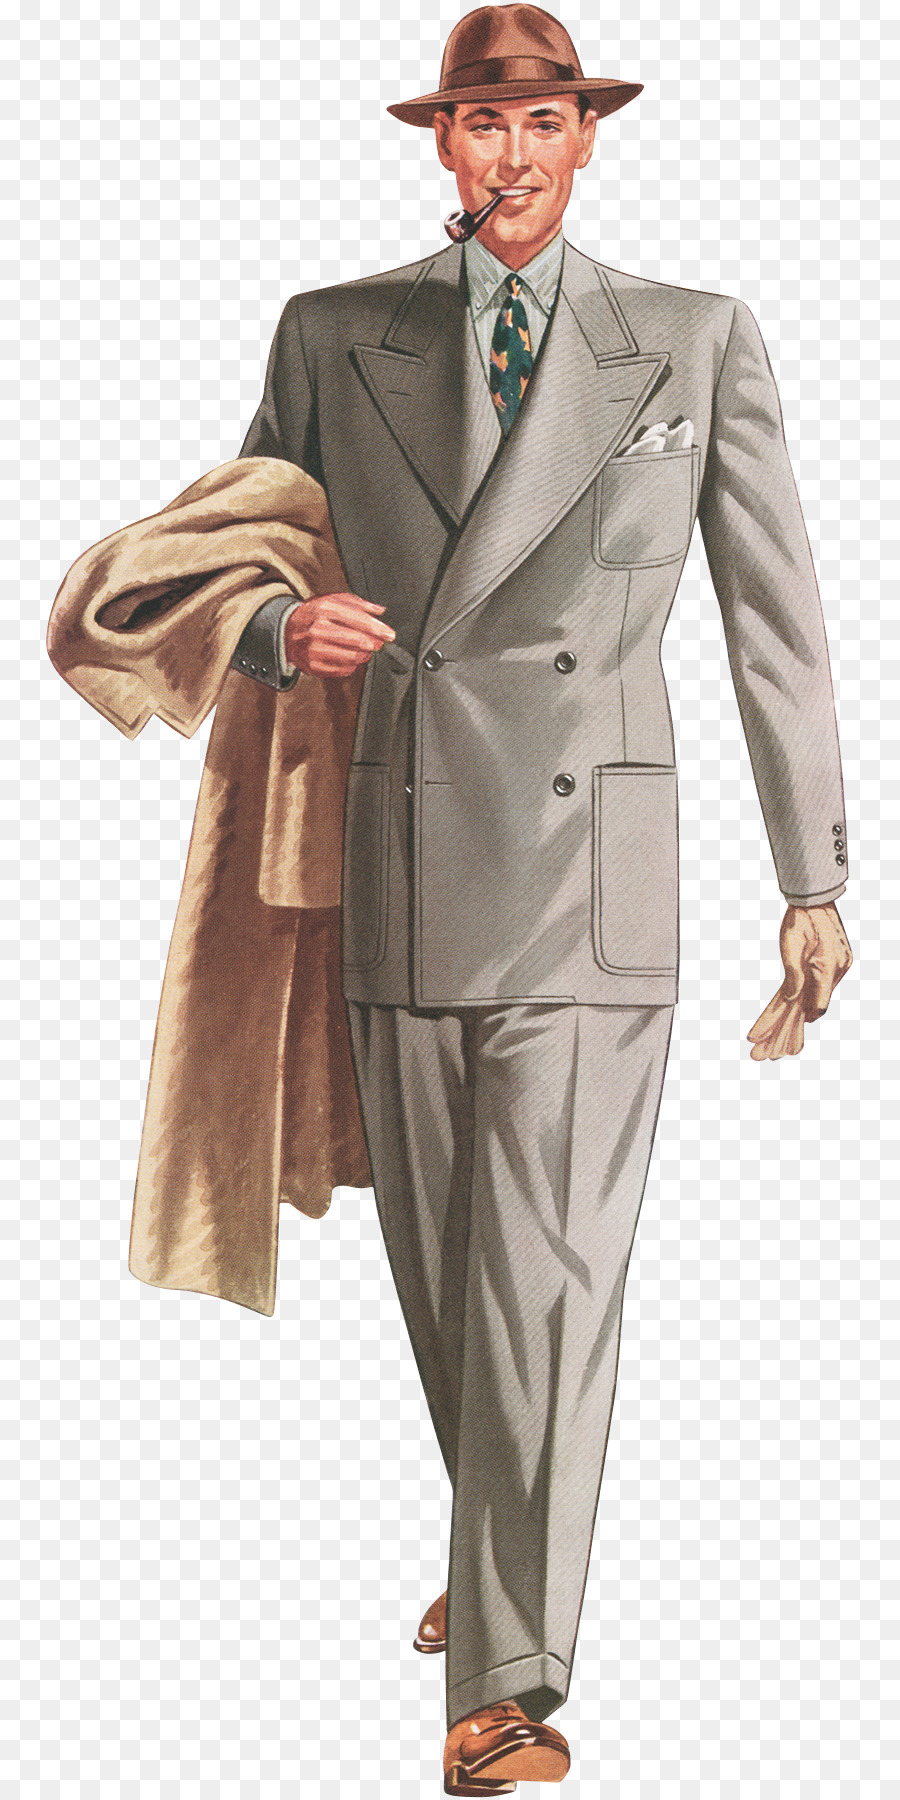 1930s 1940s Fashion Suit Vintage clothing   gentle men png download     1930s 1940s Fashion Suit Vintage clothing   gentle men